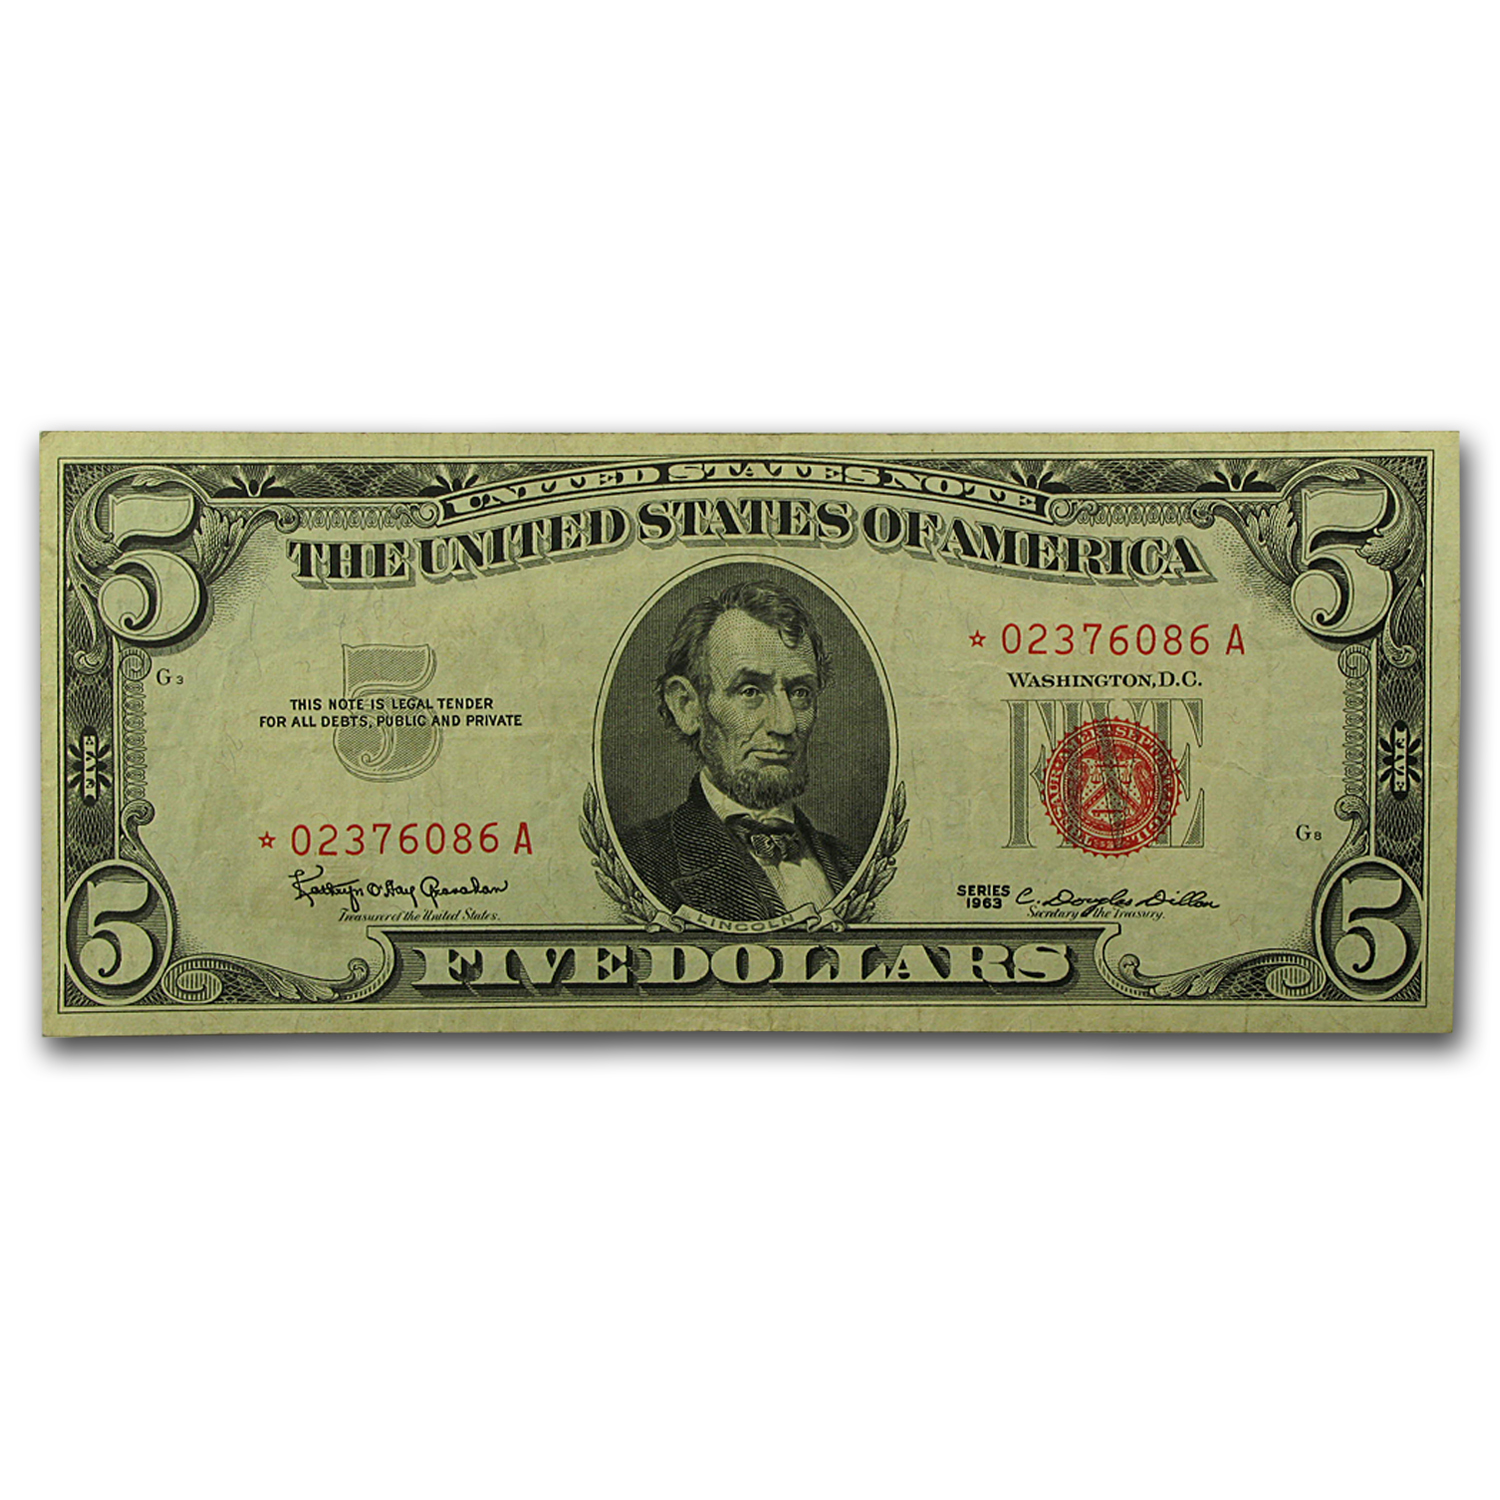 1963* $5.00 U.S. Note Red Seal XF (Star Note)